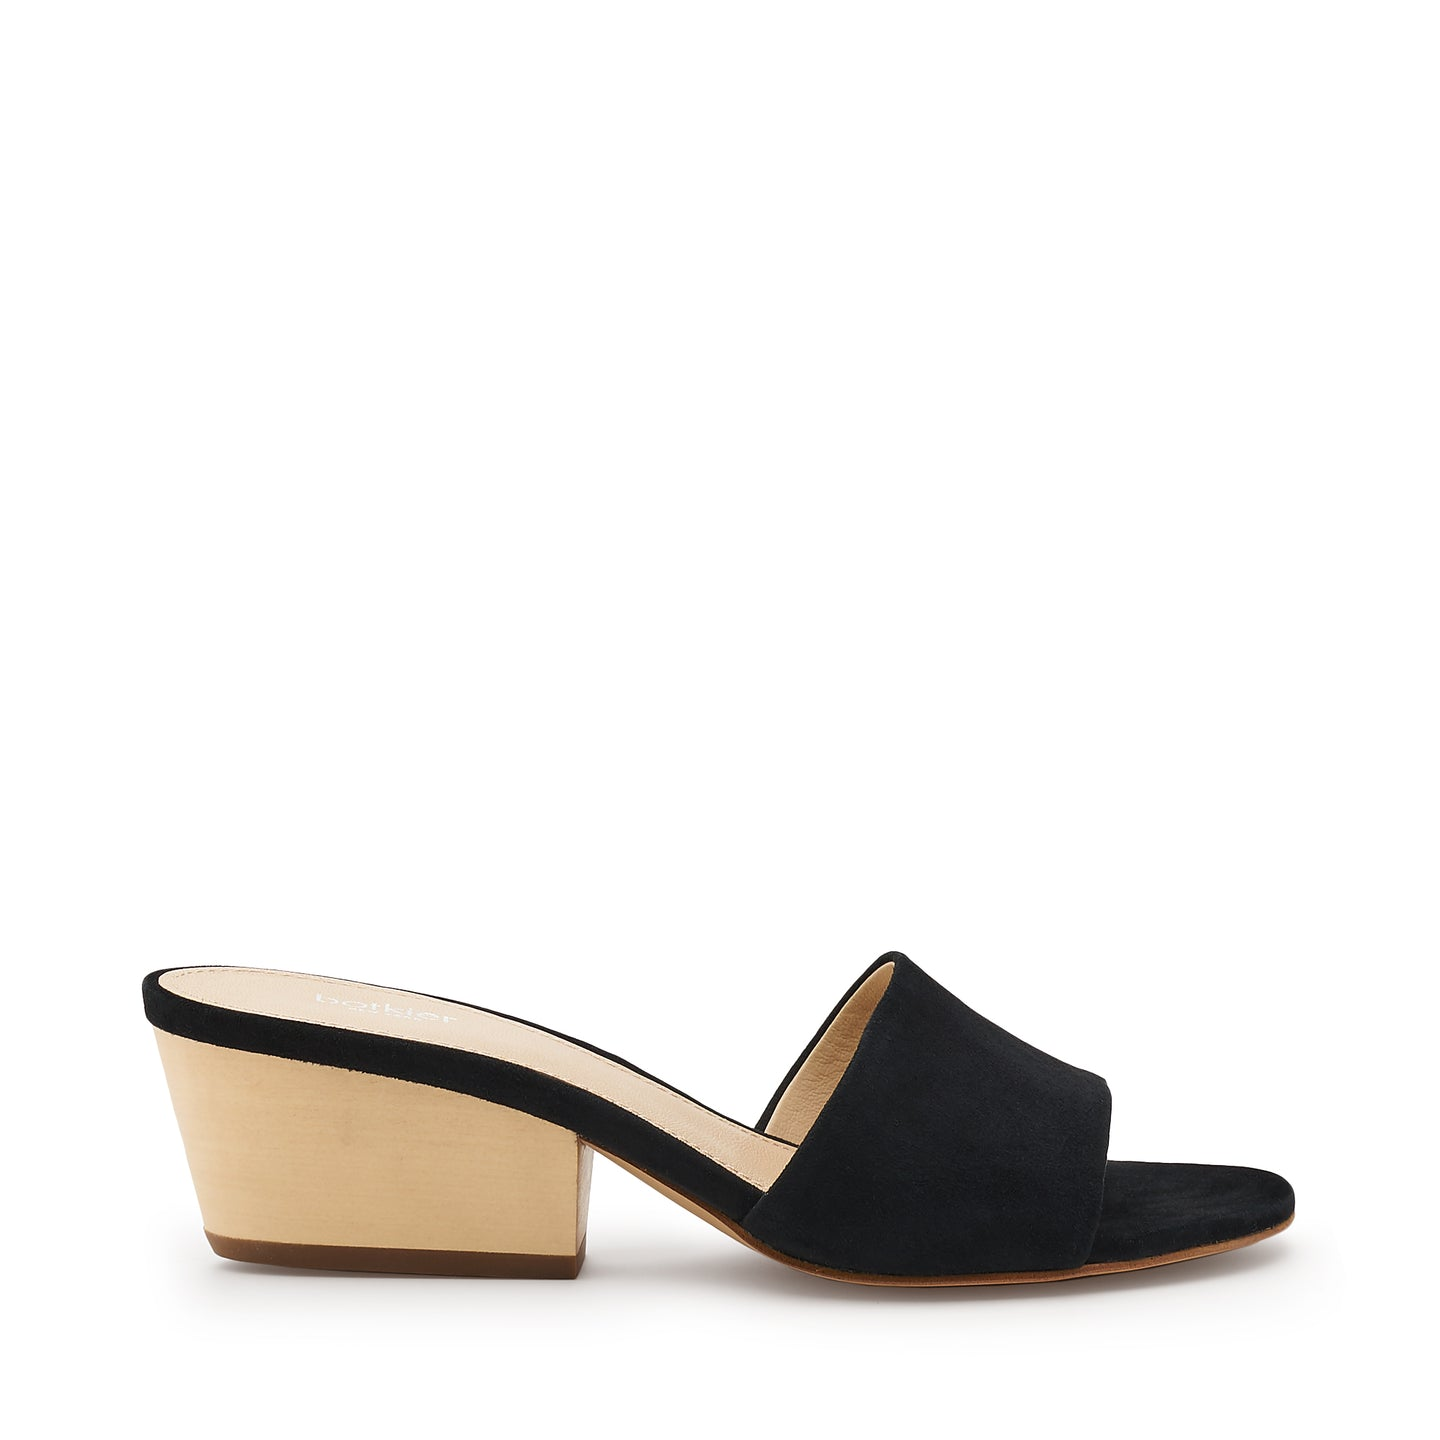 botkier carlie wood low heel slip on sandal mule in black